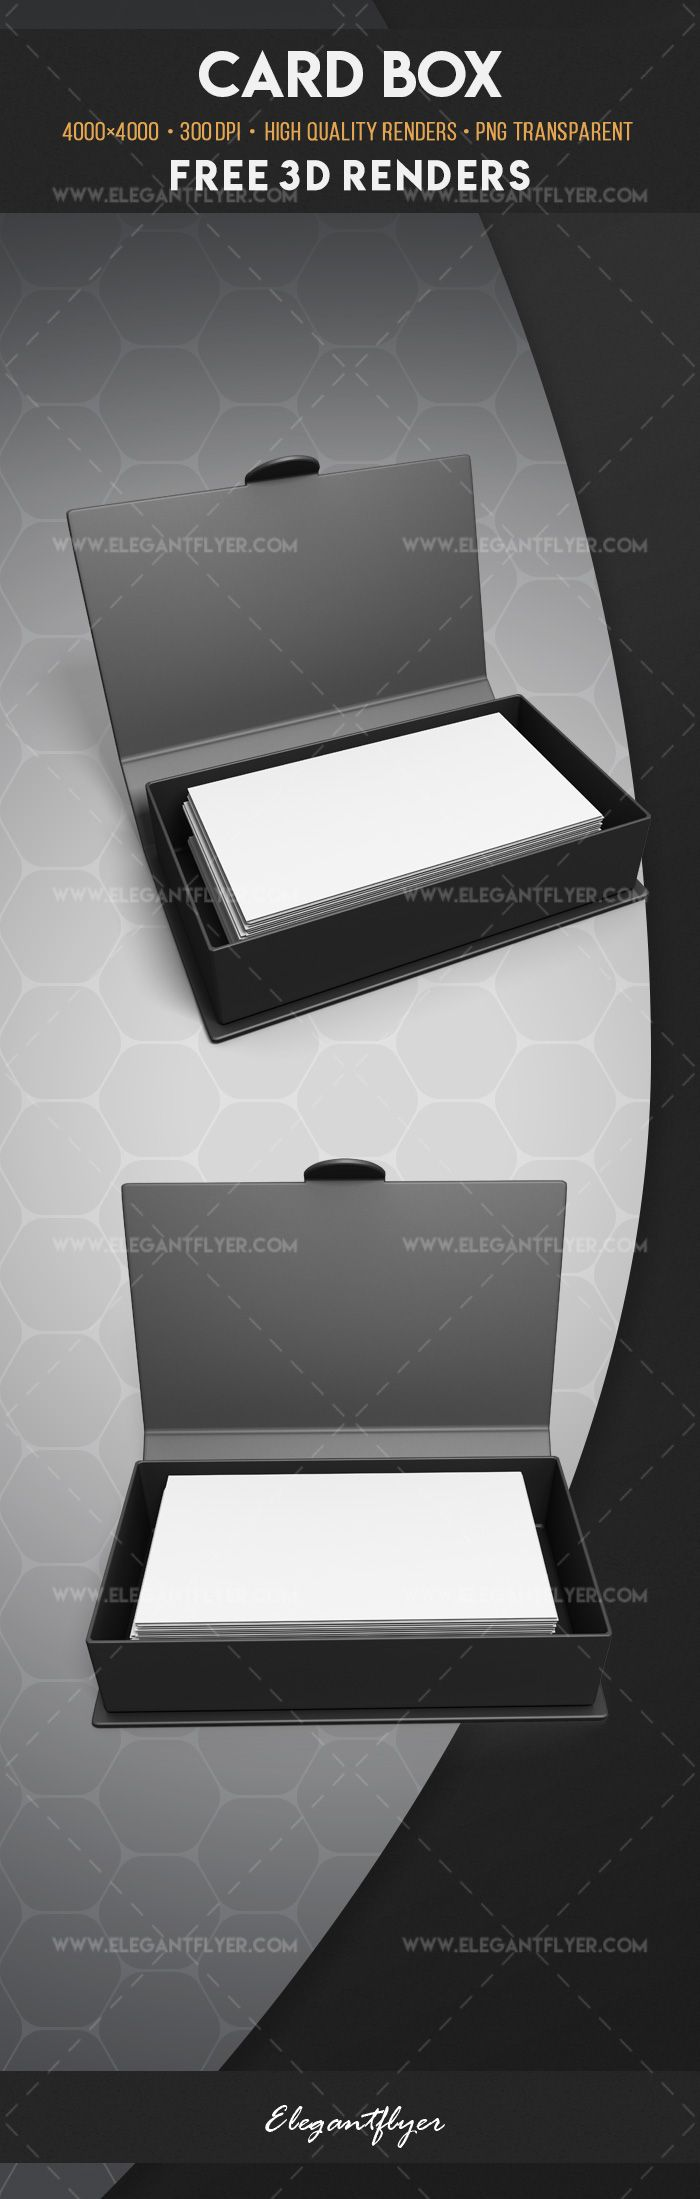 Card box – Free 3d Render Templates